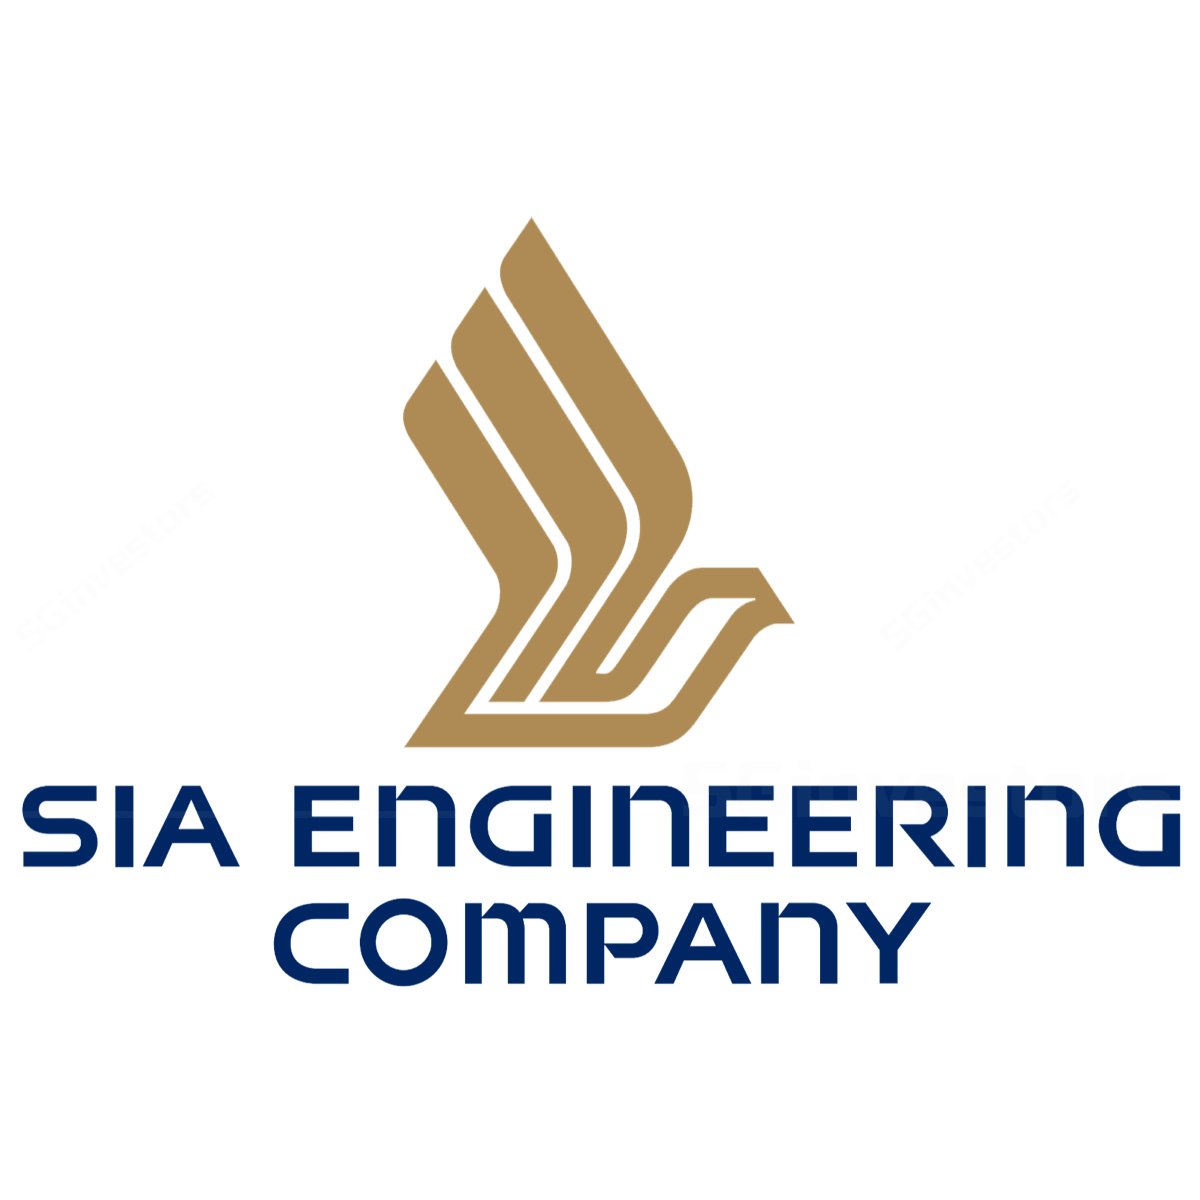 SIA Engineering Company Ltd - Phillip Securities 2018-02-05: Lifted By Strong JV And Stable Associated Companies